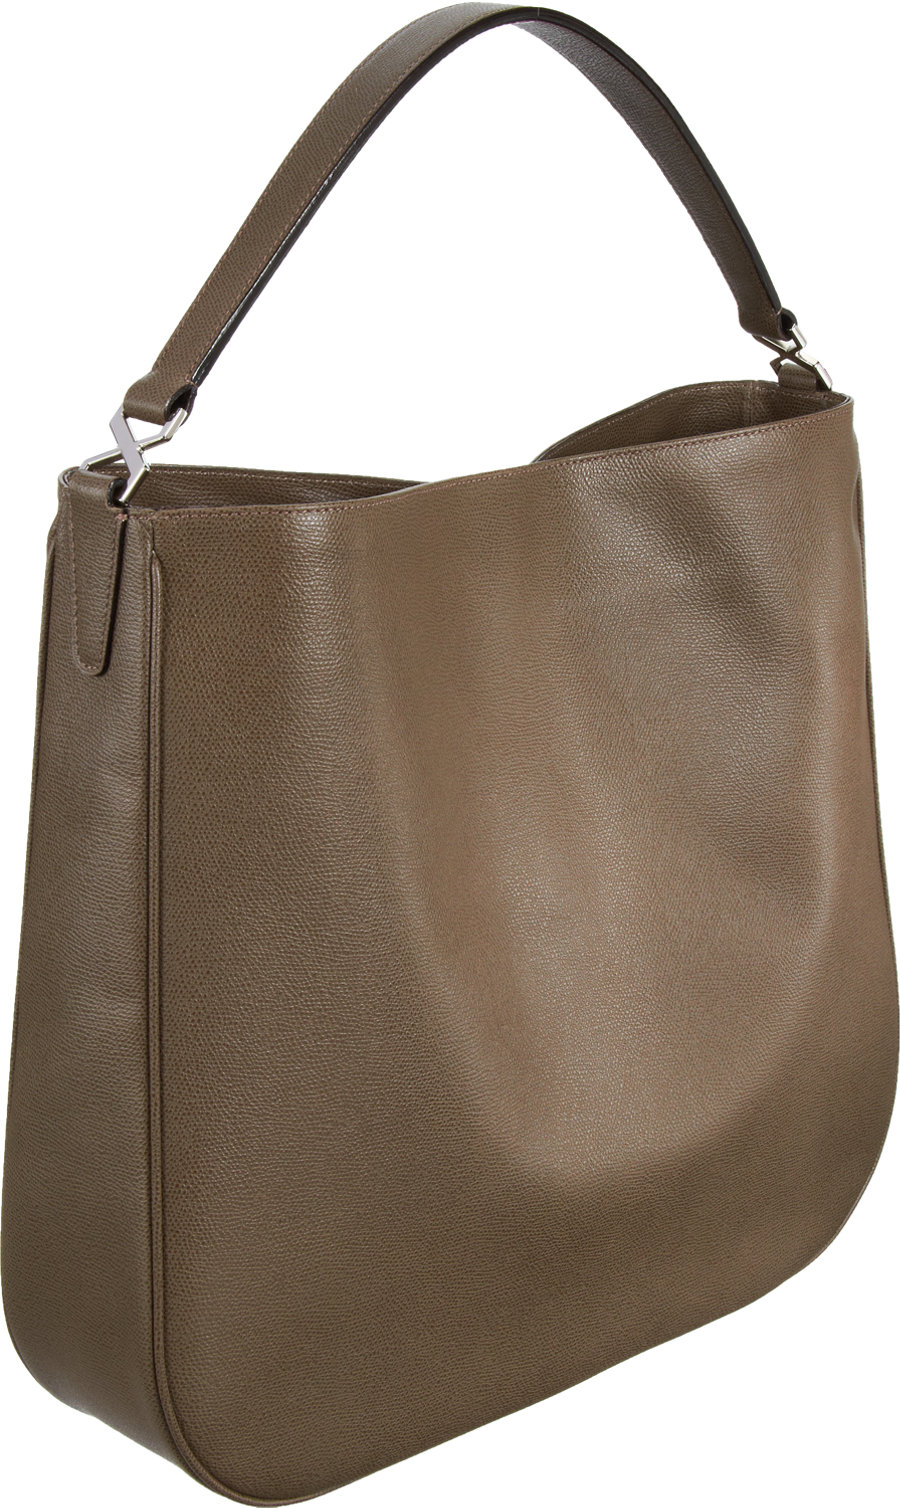 Valextra Smile Hobo Bag in Gray